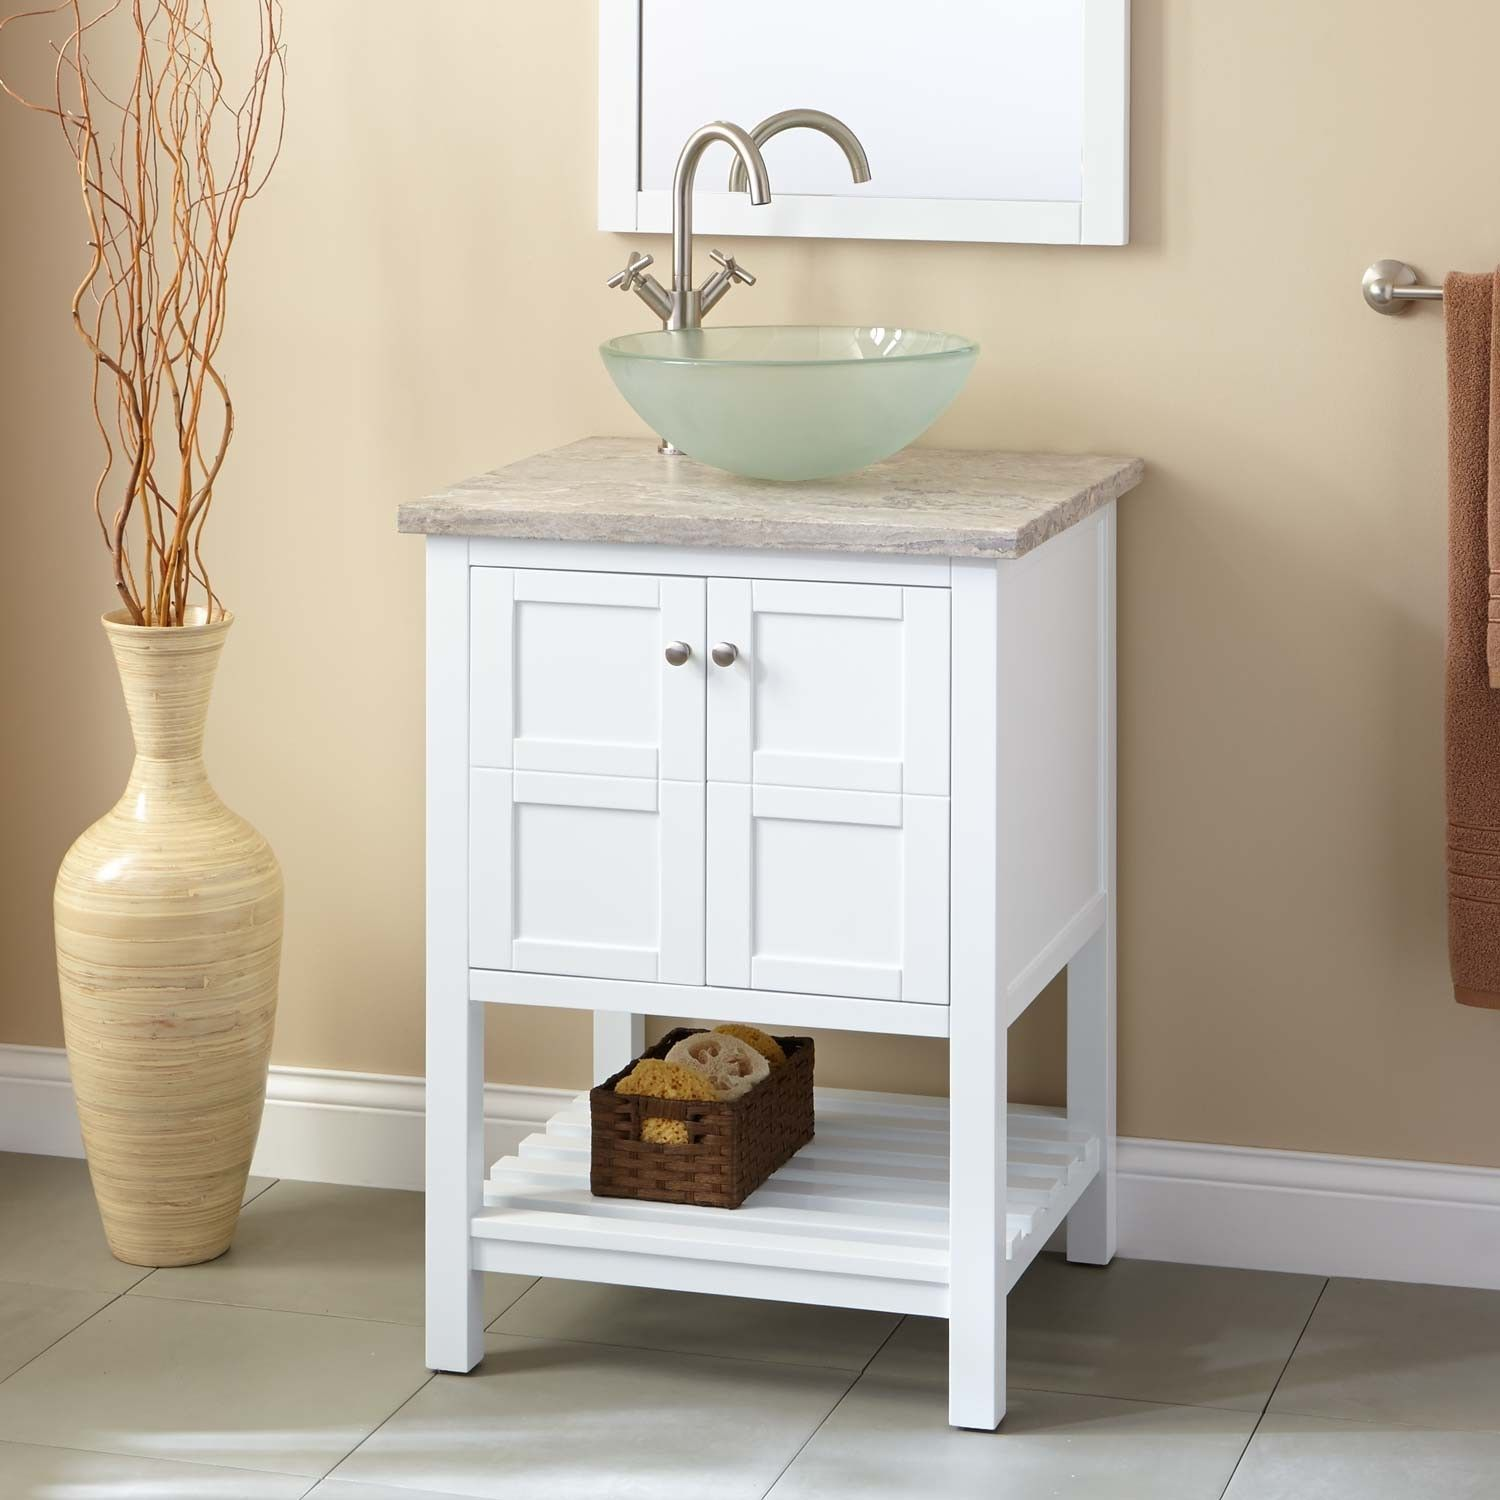 Pin By Claire Wittmeier On Powder Room In 2020 24 Inch Bathroom